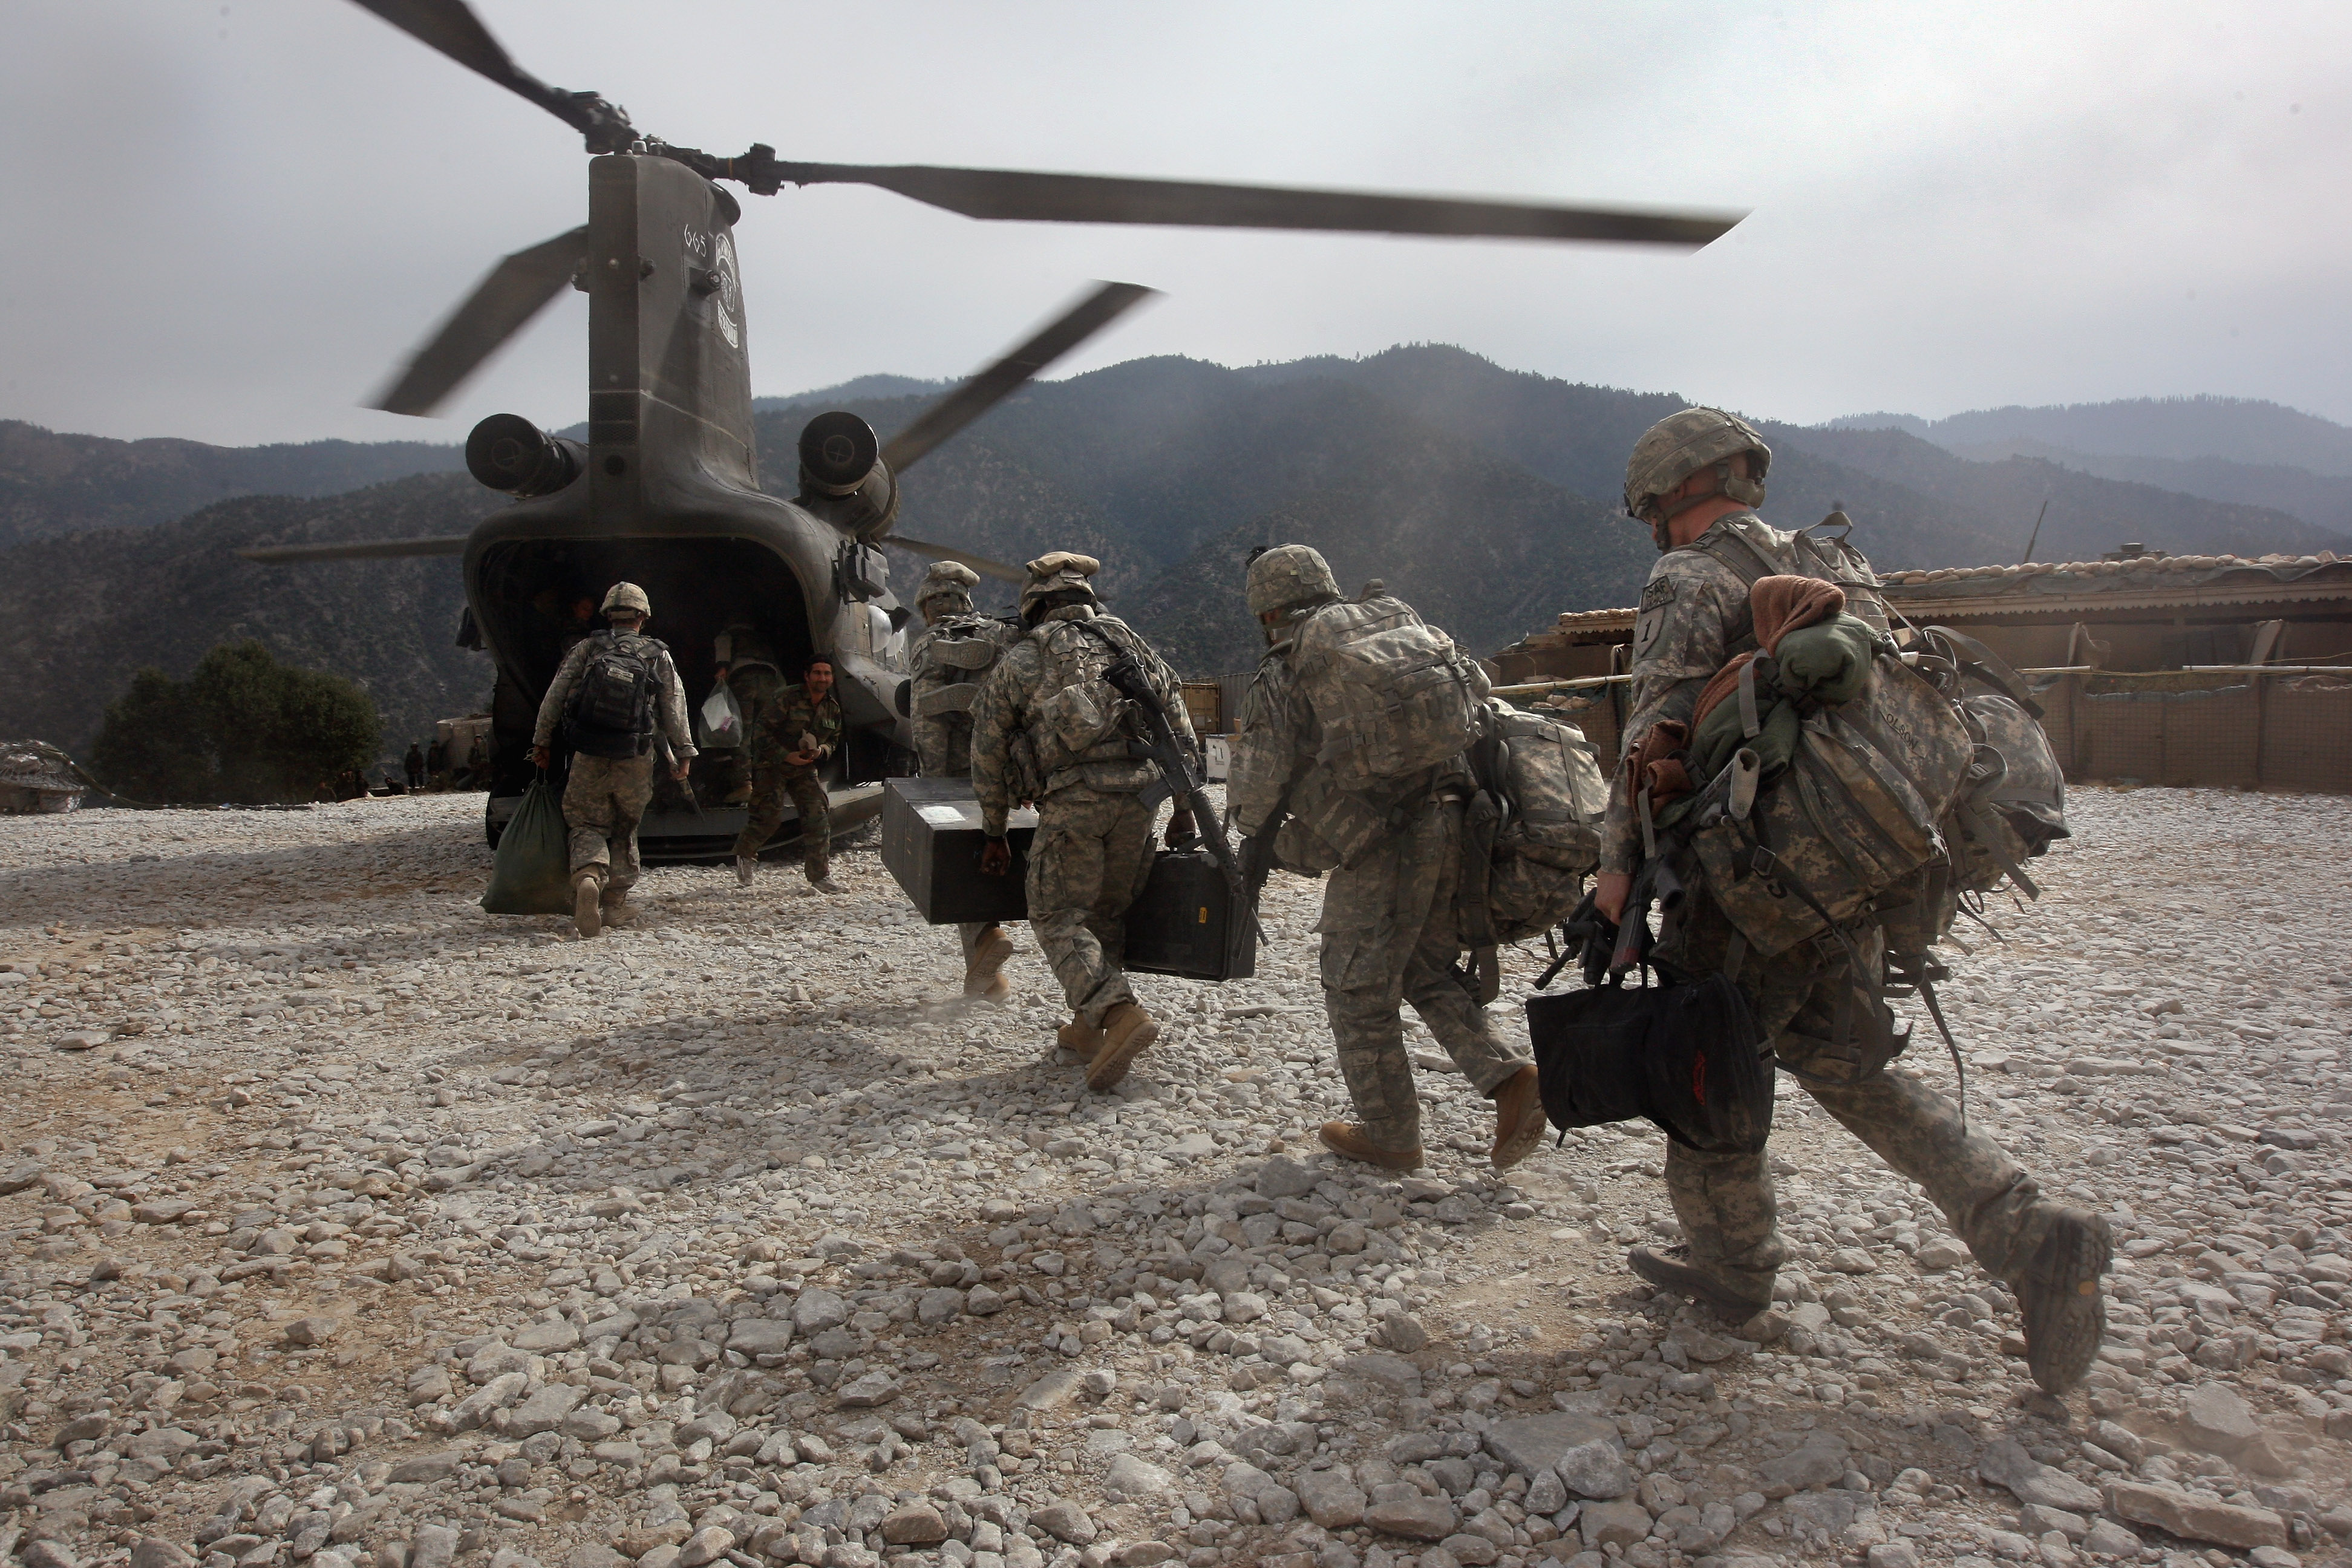 US to Withdraw All Troops From Afghanistan by Sept. 11